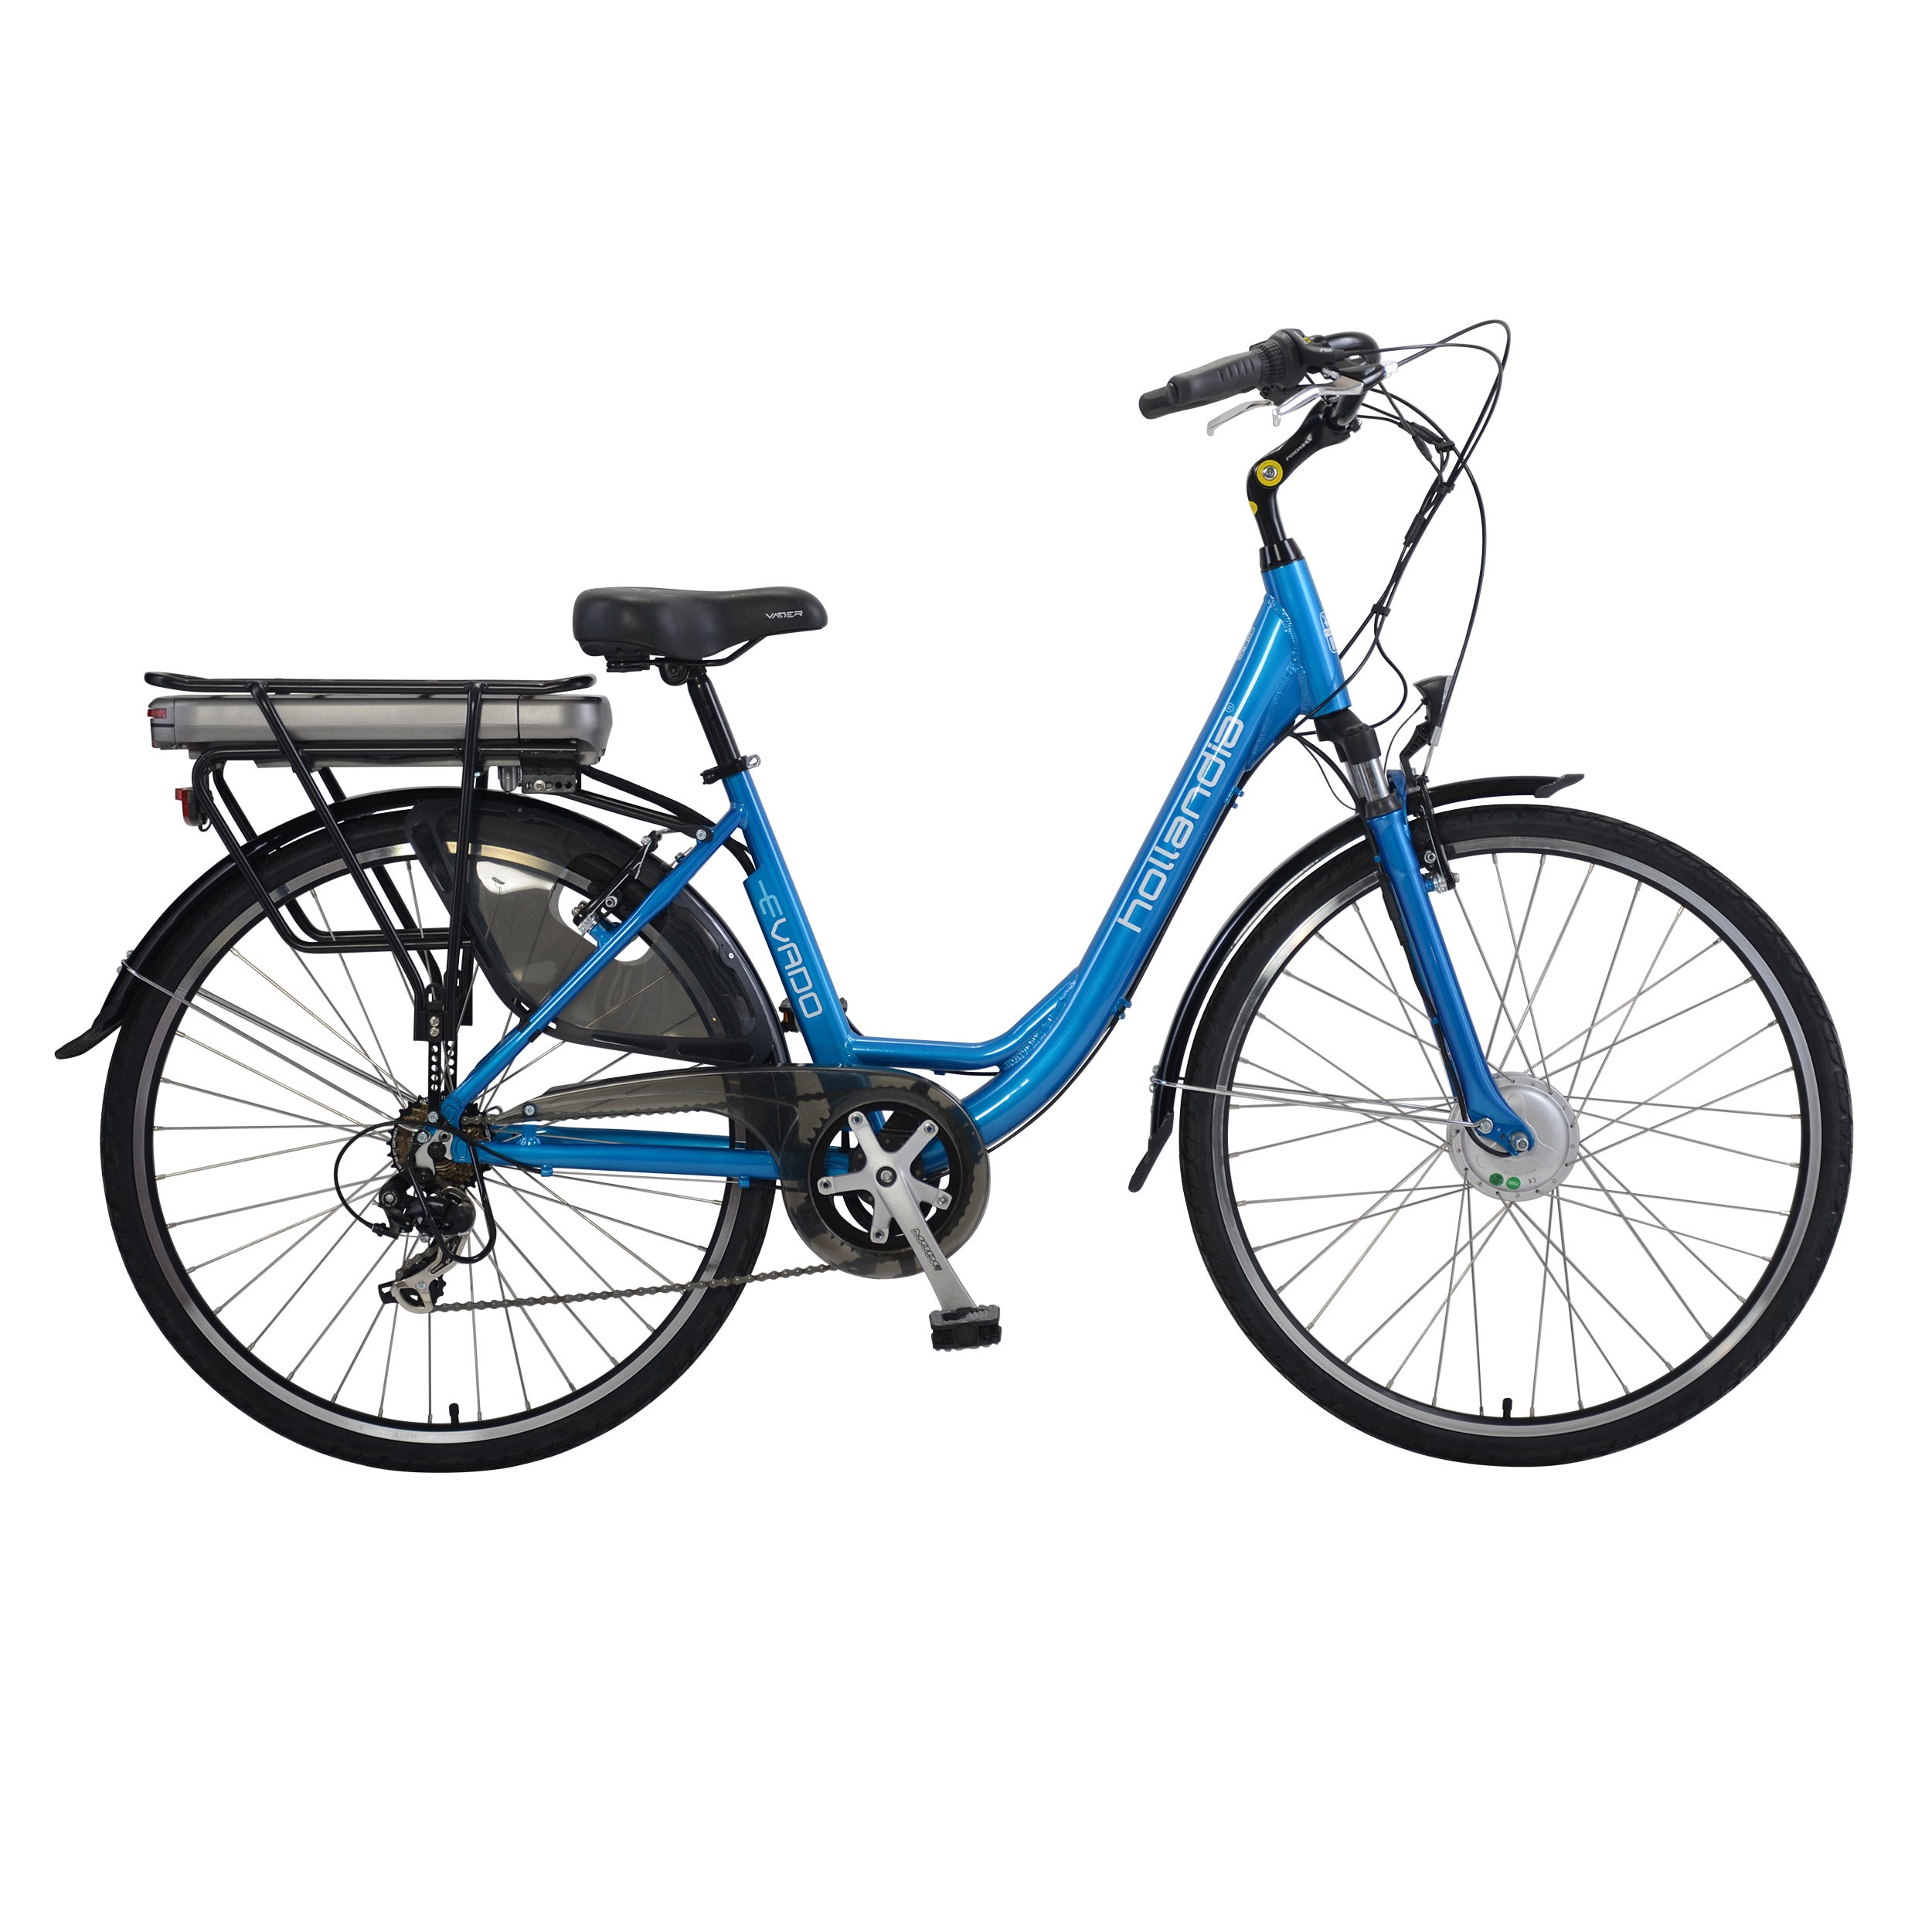 Electric Commuter Bike >> Hollandia Electric City Commuter Bicycle